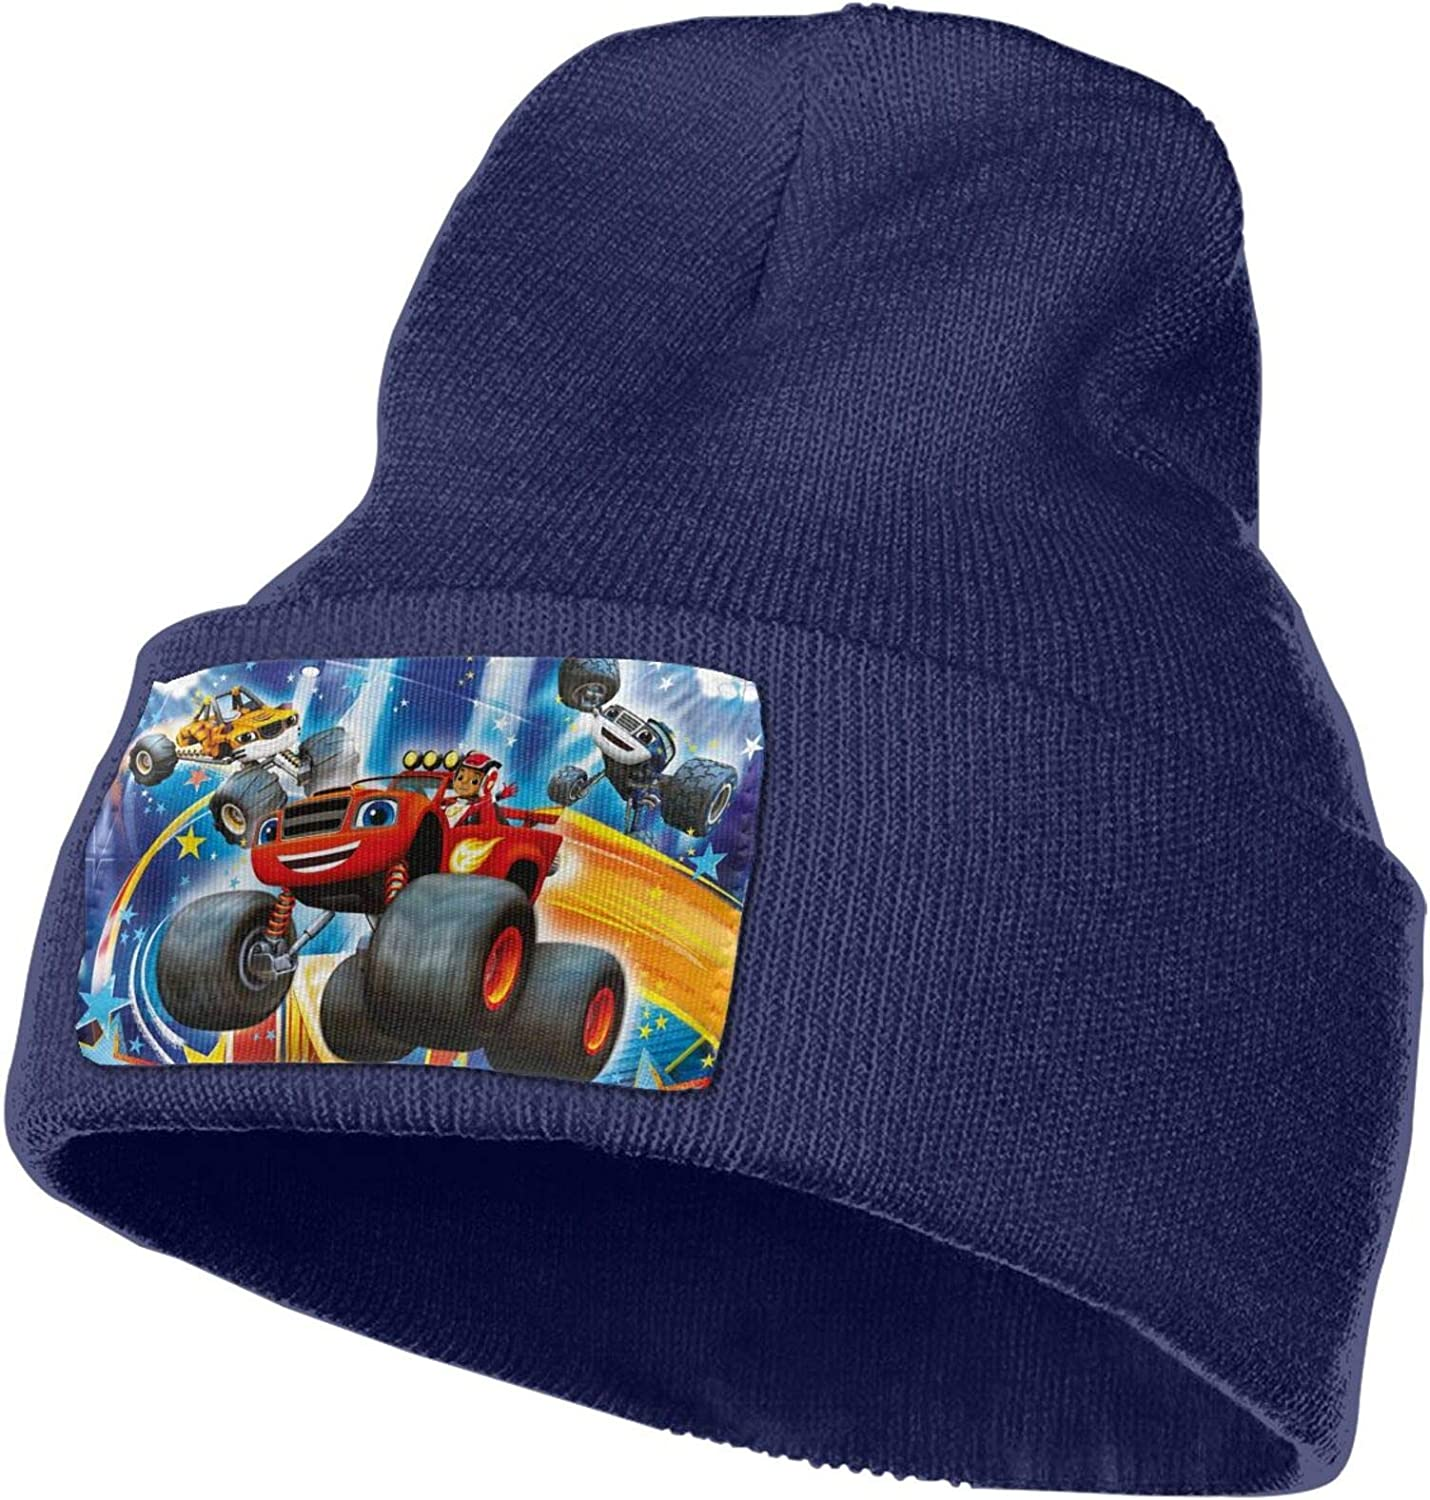 Oklahoma City Mall Helloword Max 71% OFF Blaze and The Monster Warm Winter Beani Machines Merch